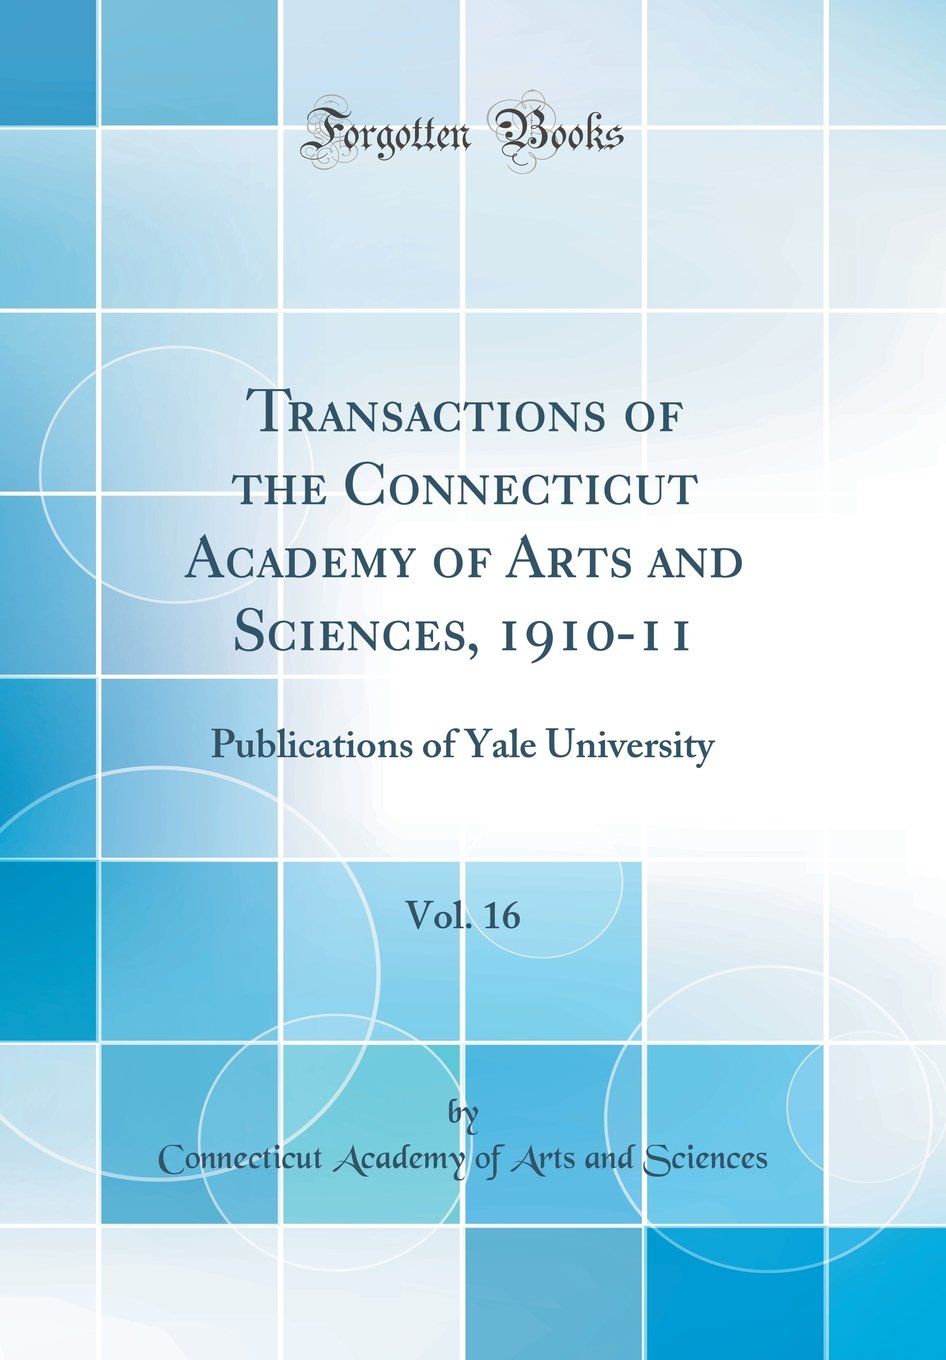 Download Transactions of the Connecticut Academy of Arts and Sciences, 1910-11, Vol. 16: Publications of Yale University (Classic Reprint) PDF